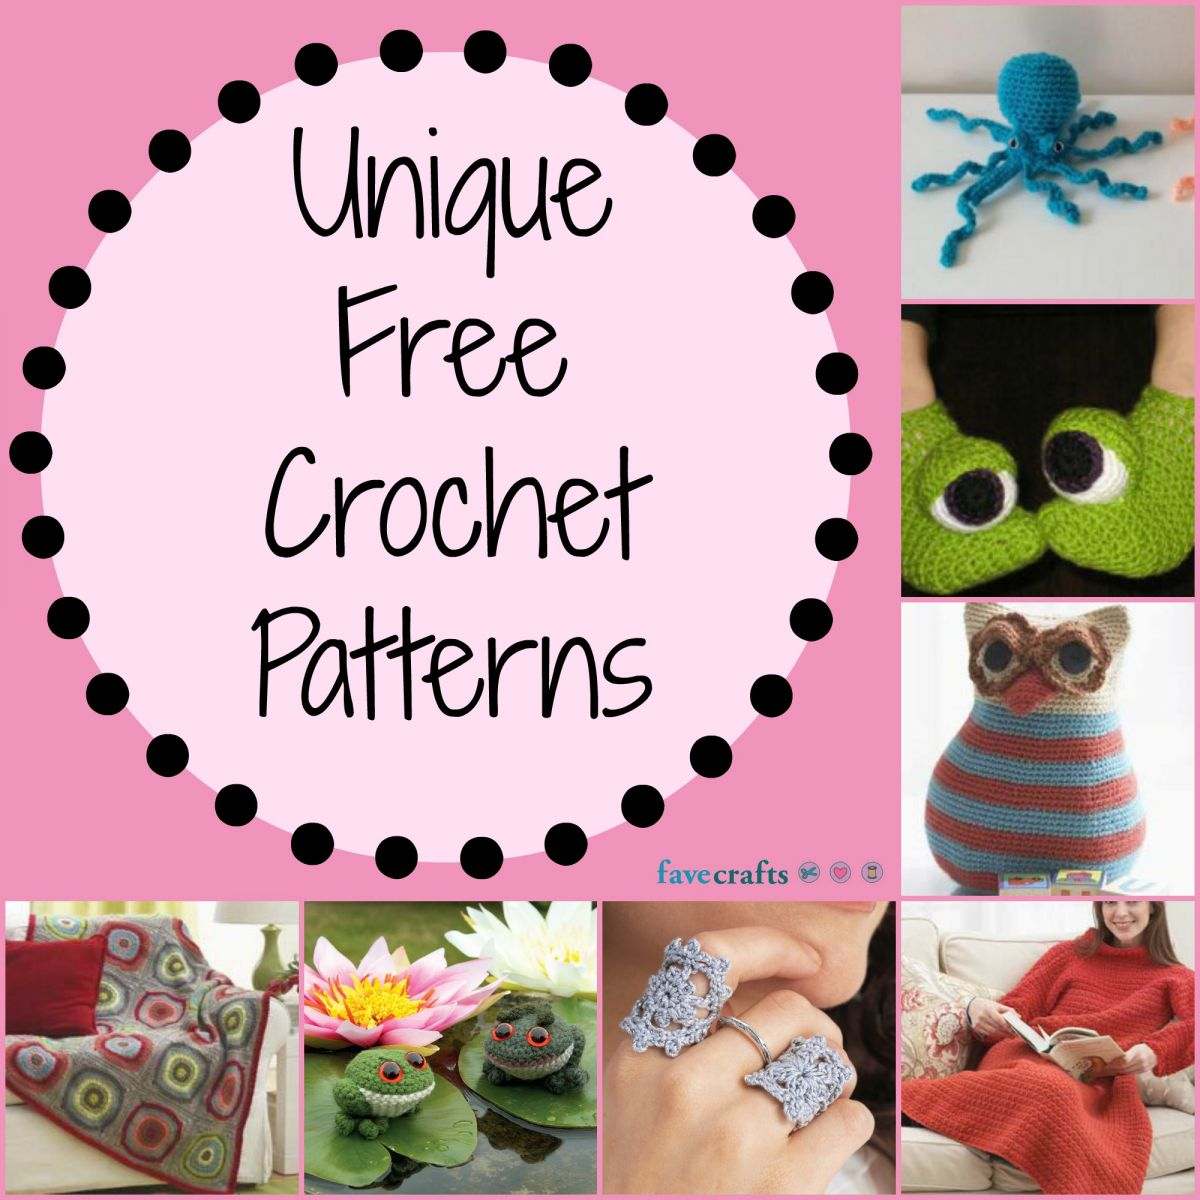 17 Unique Free Crochet Patterns Favecraftscom